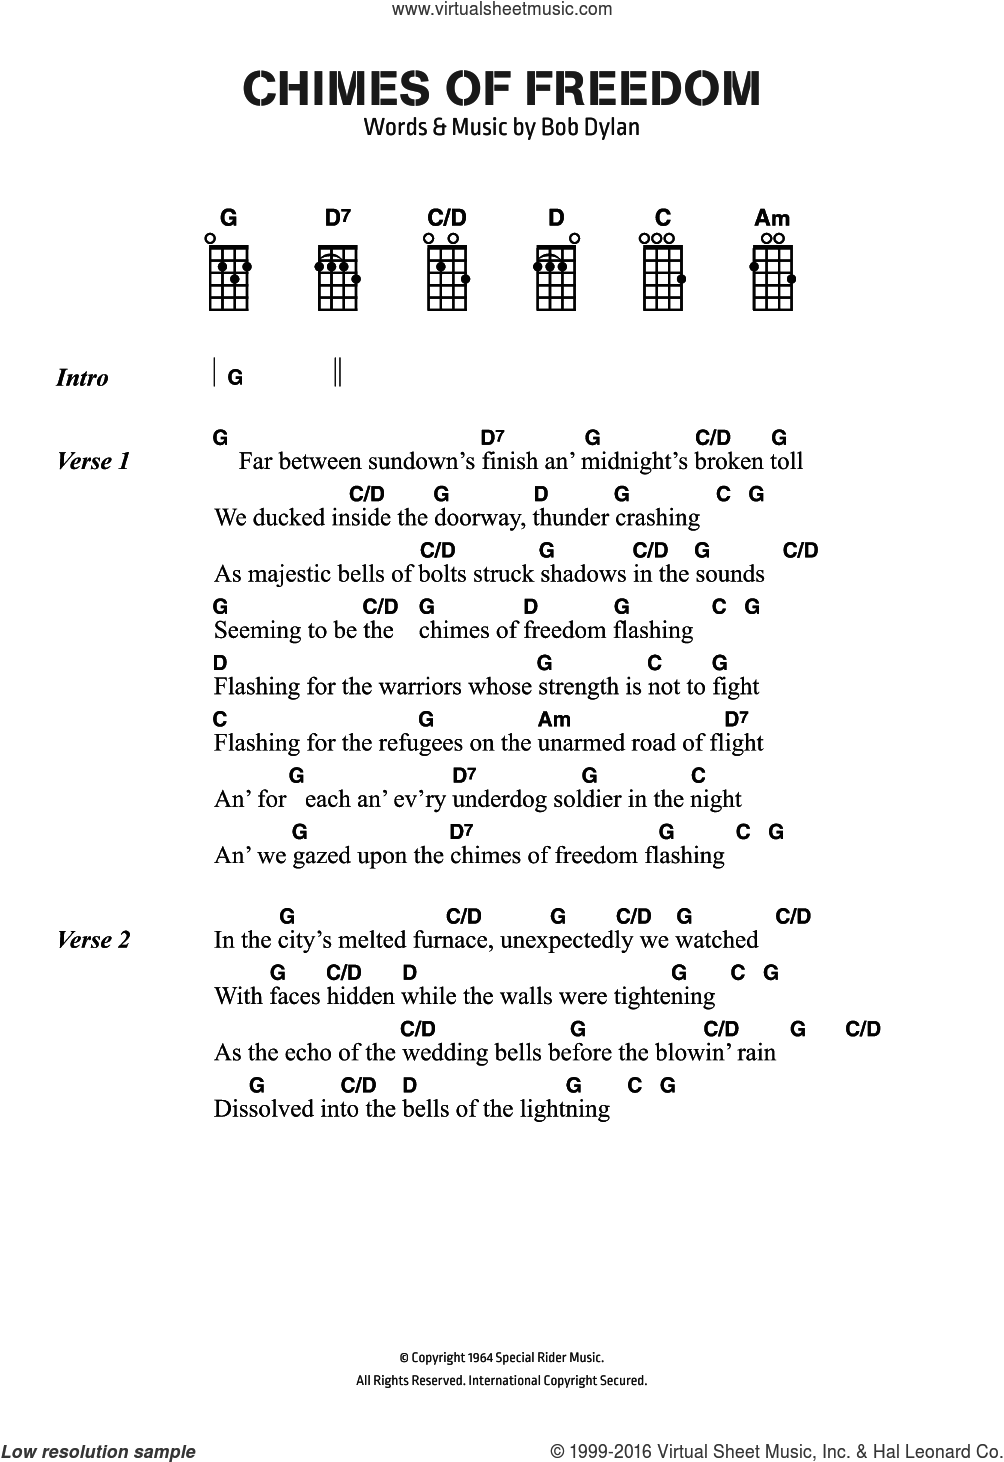 Chimes Of Freedom sheet music for voice, piano or guitar by Bob Dylan, intermediate skill level